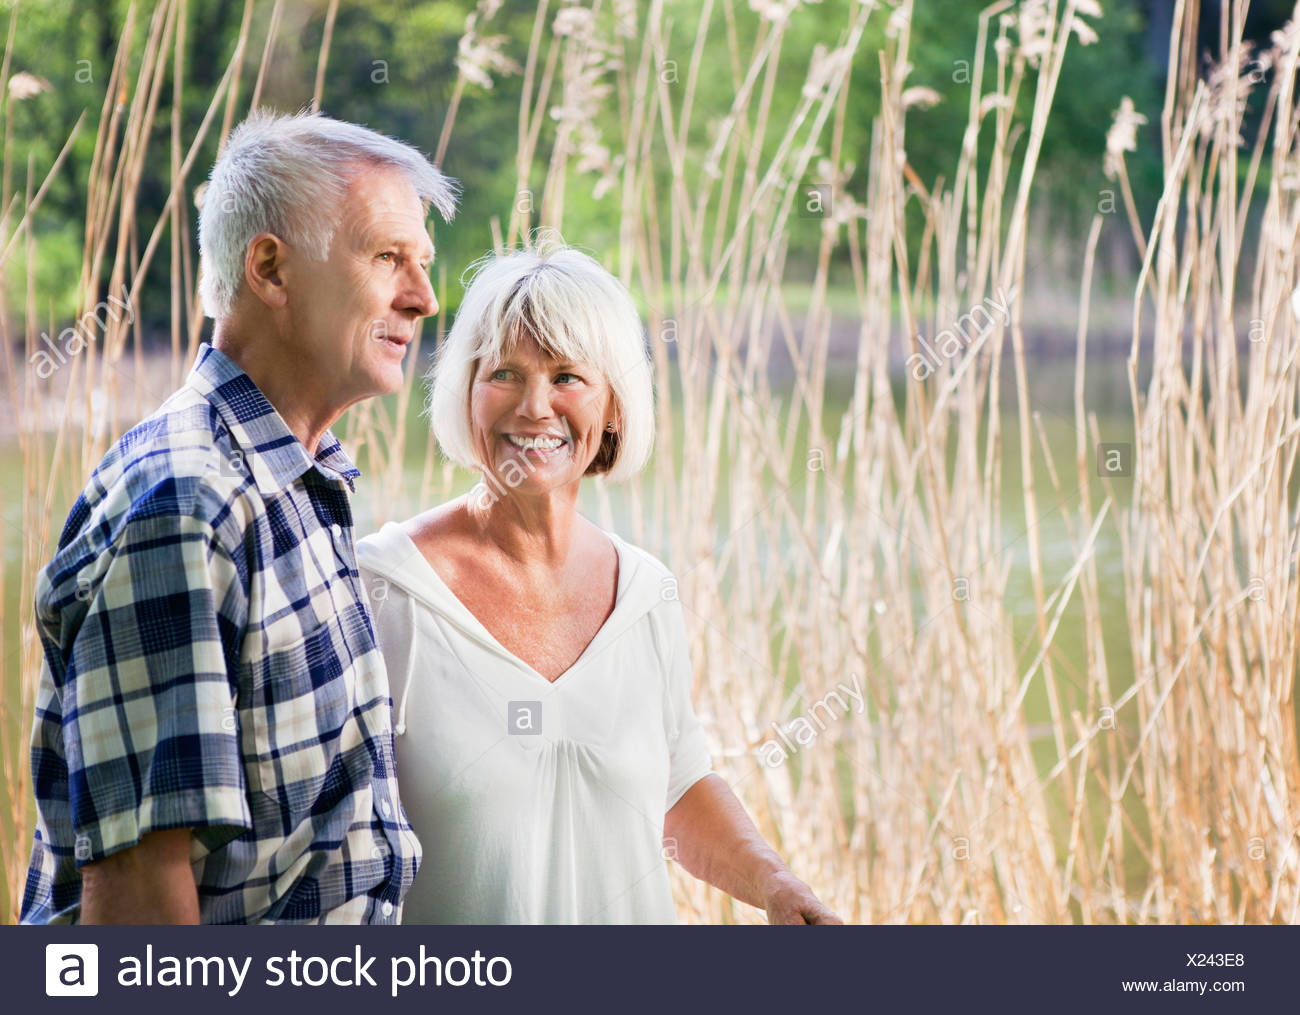 Old couple on a stroll - Stock Image